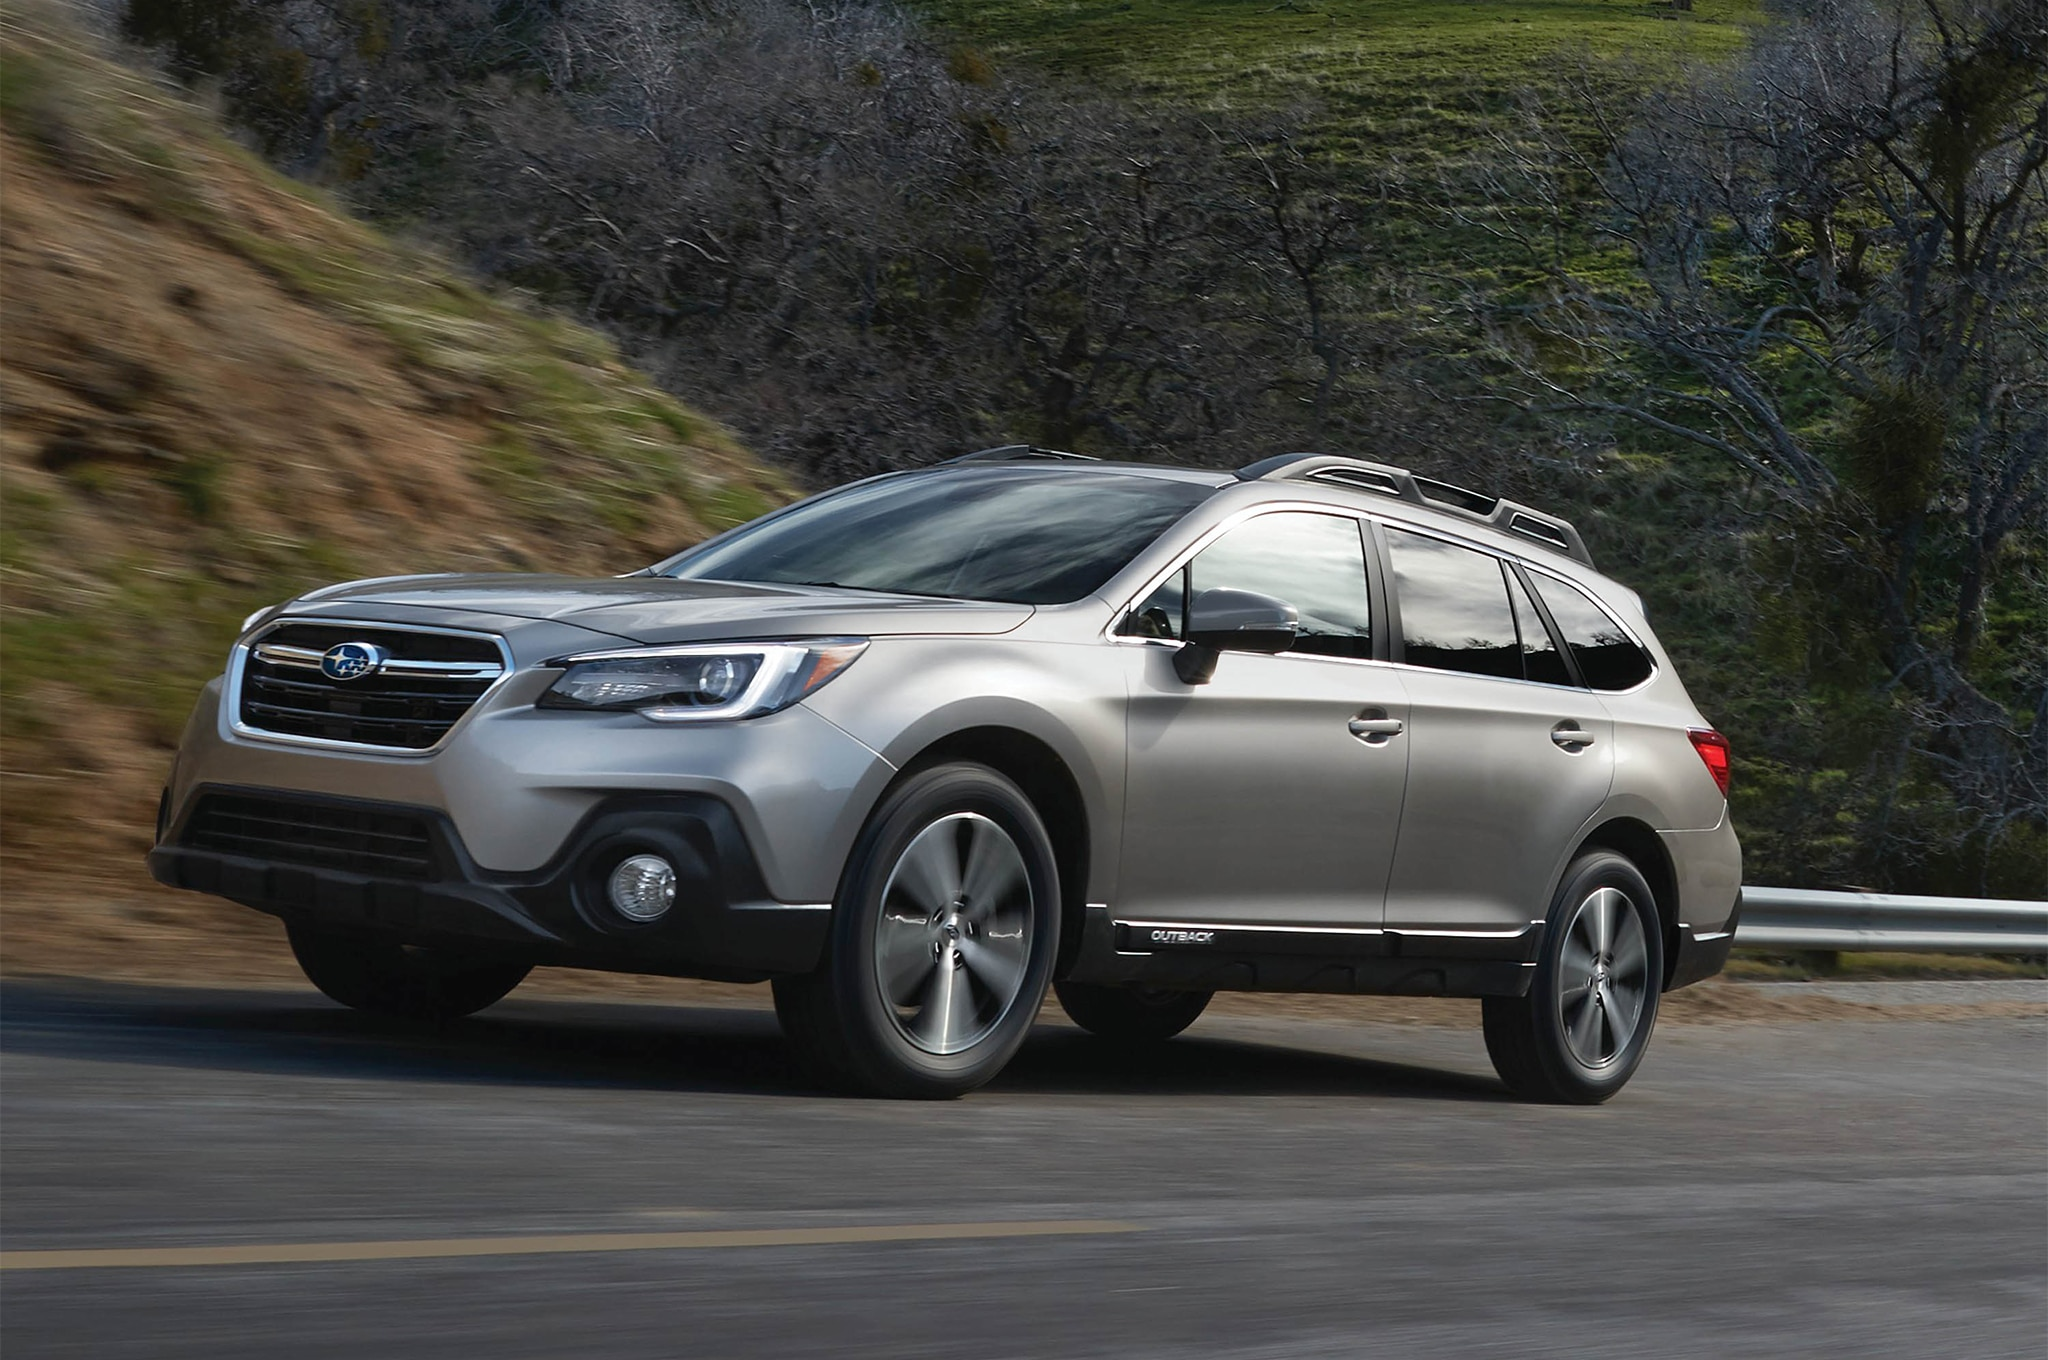 2018 Subaru Outback Front Three Quarter In Motion